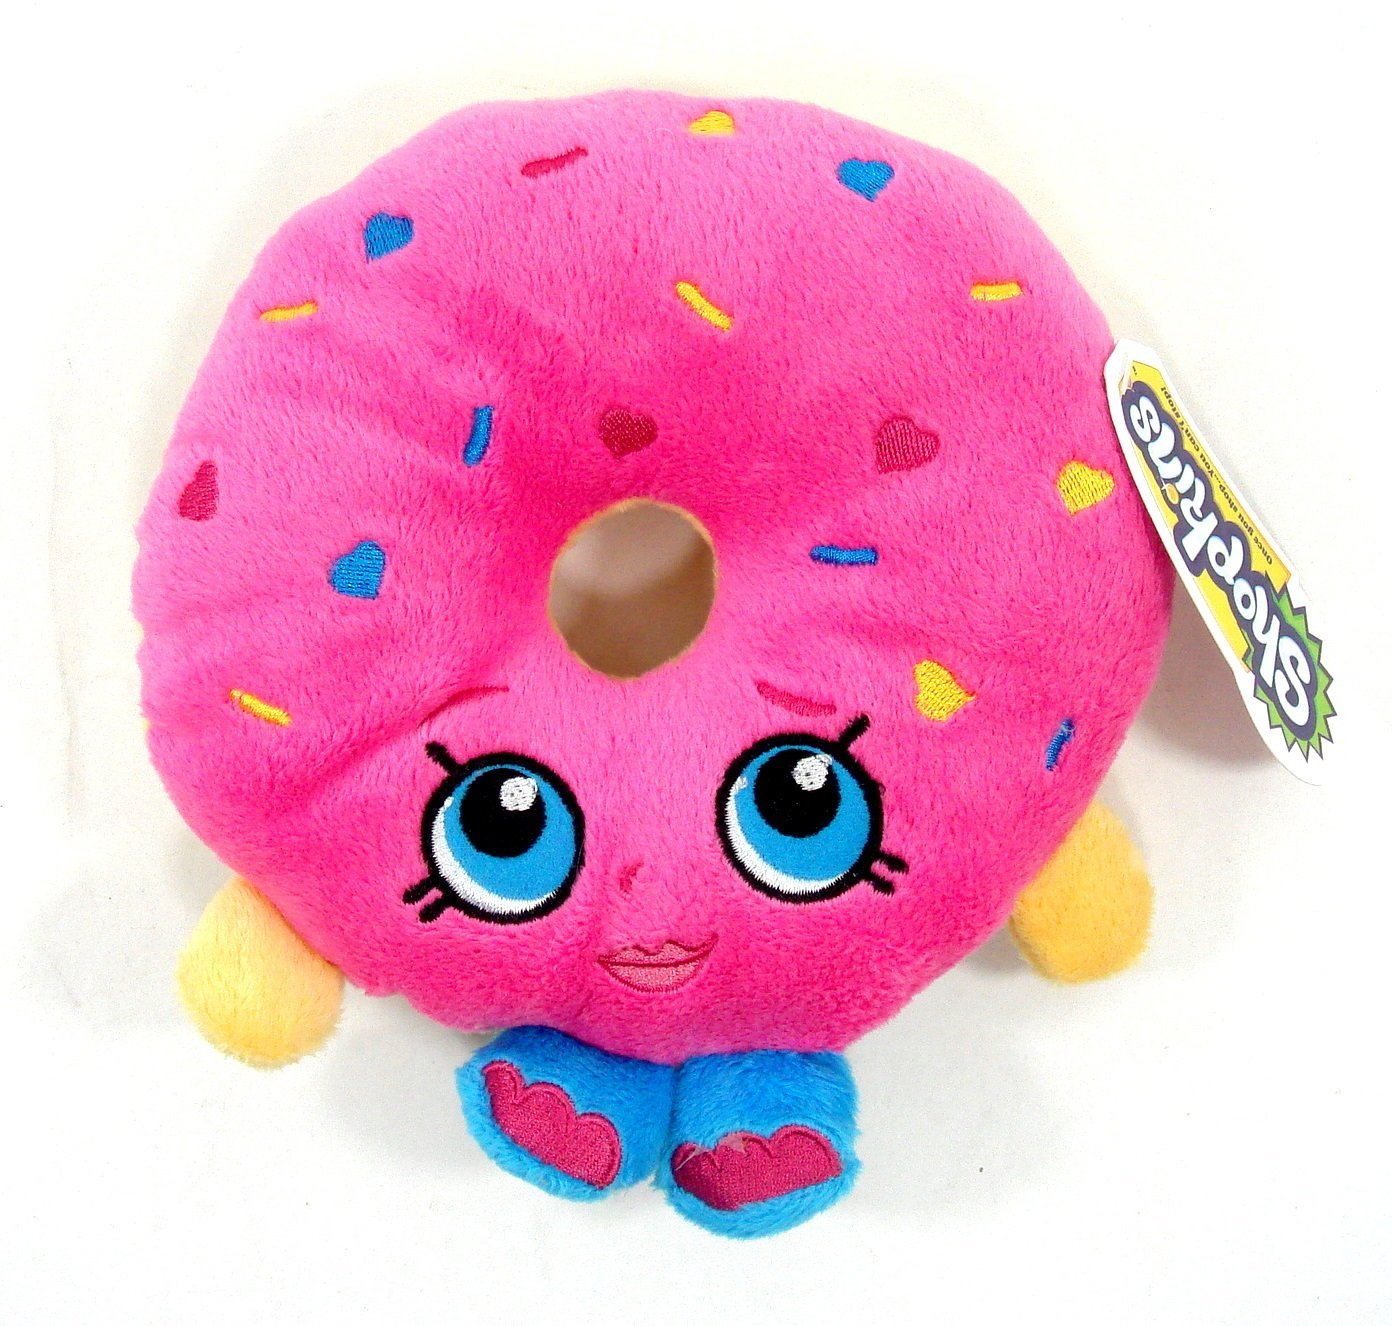 "Plush - Shopkins - D'lish Donut 6.5"" Soft Doll Toys New 149969"